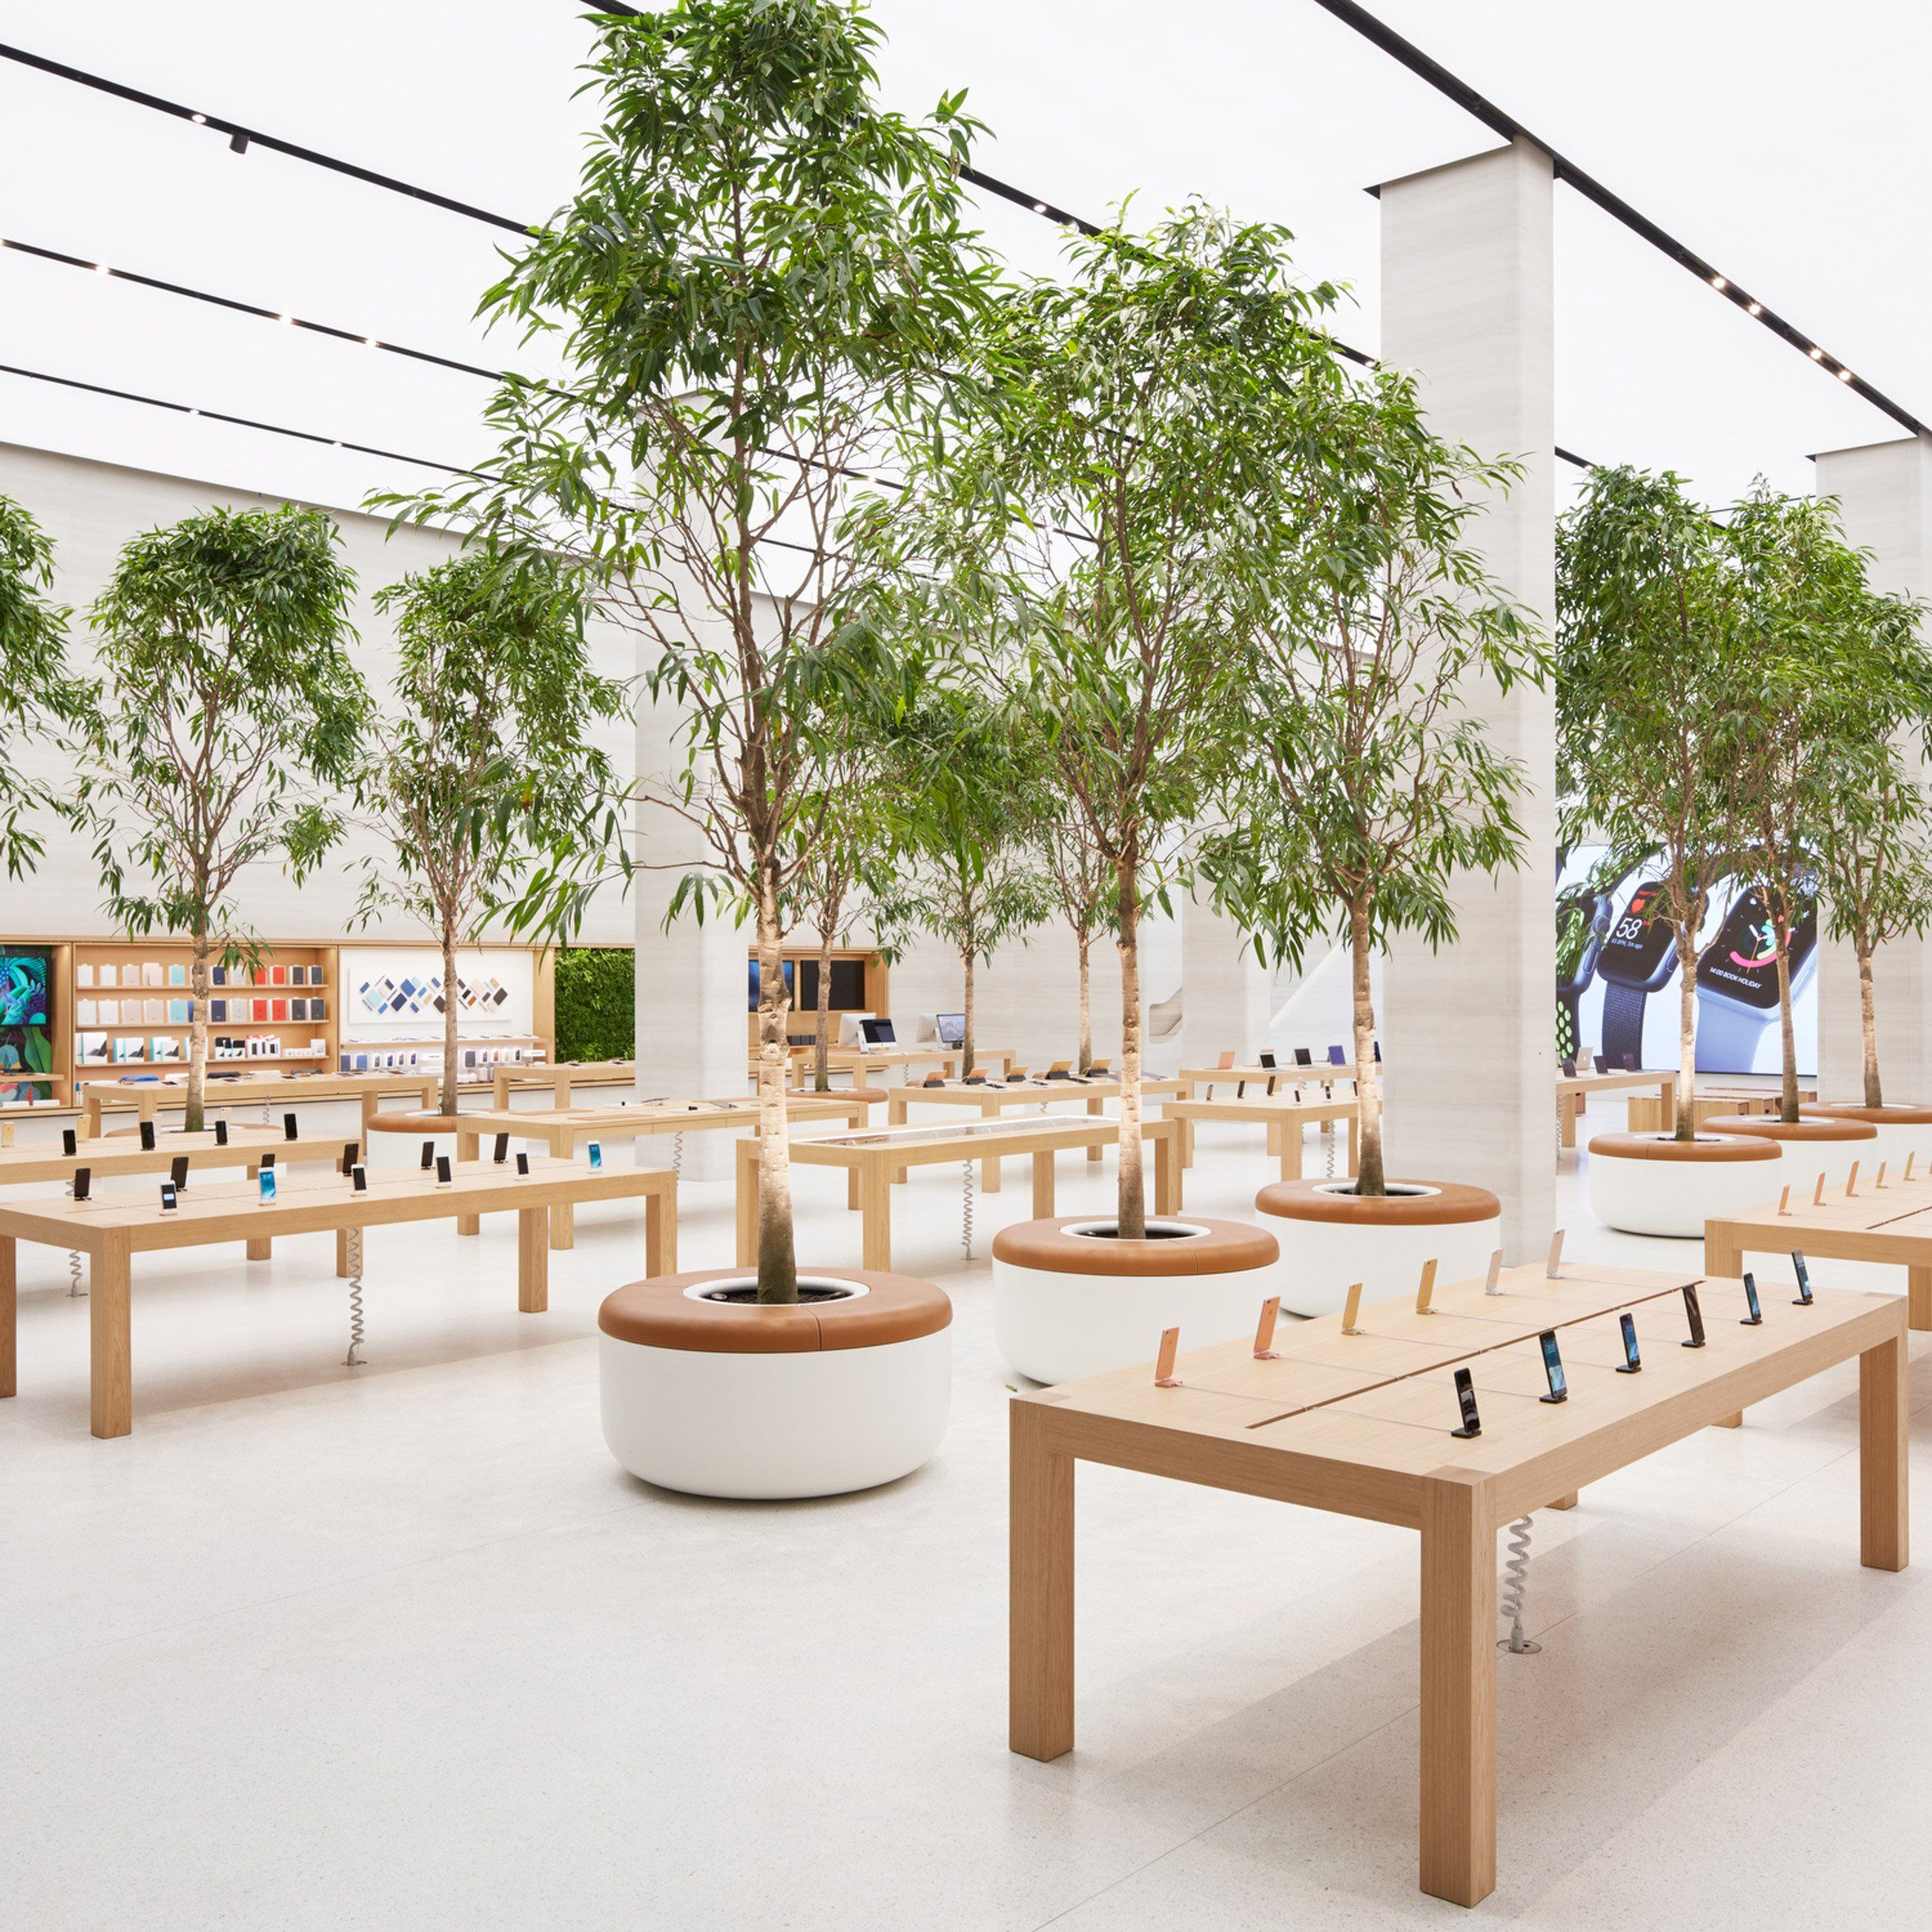 Apple's central London store has reopened following a major